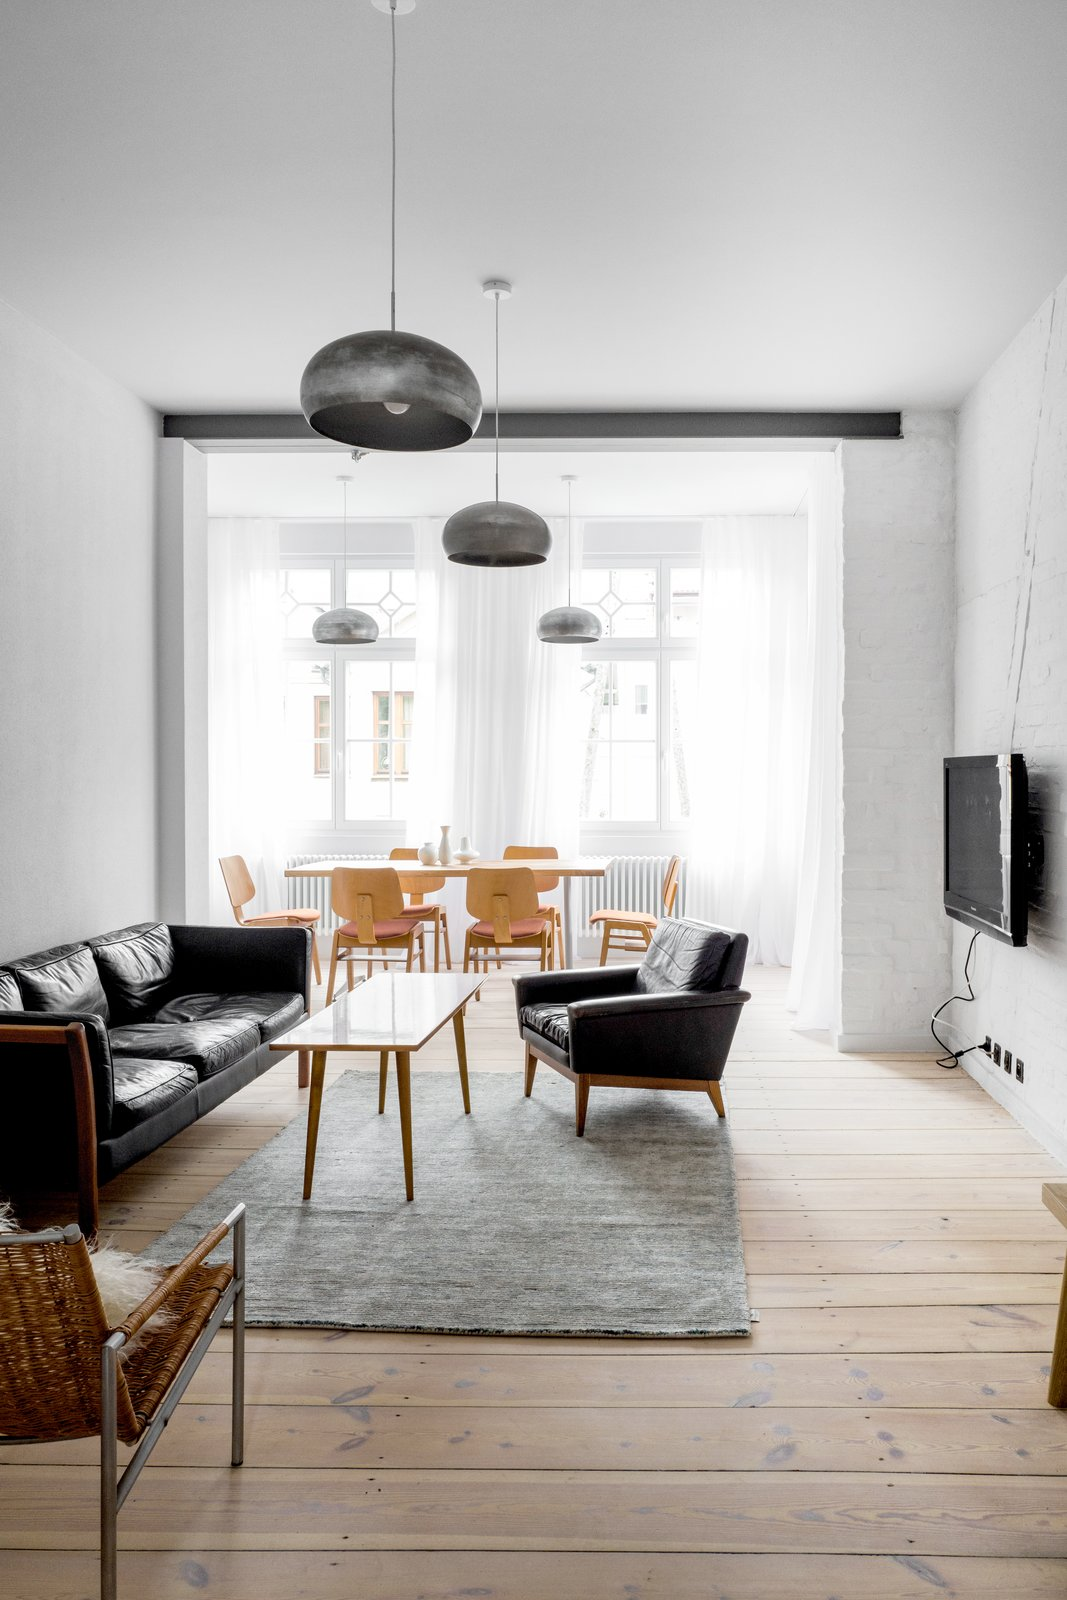 Living Room, Sofa, Chair, Coffee Tables, Pendant Lighting, and Light Hardwood Floor  Best Photos from A Holiday Apartment in Poland With the Perfect Mix of Vintage and Custom Furniture